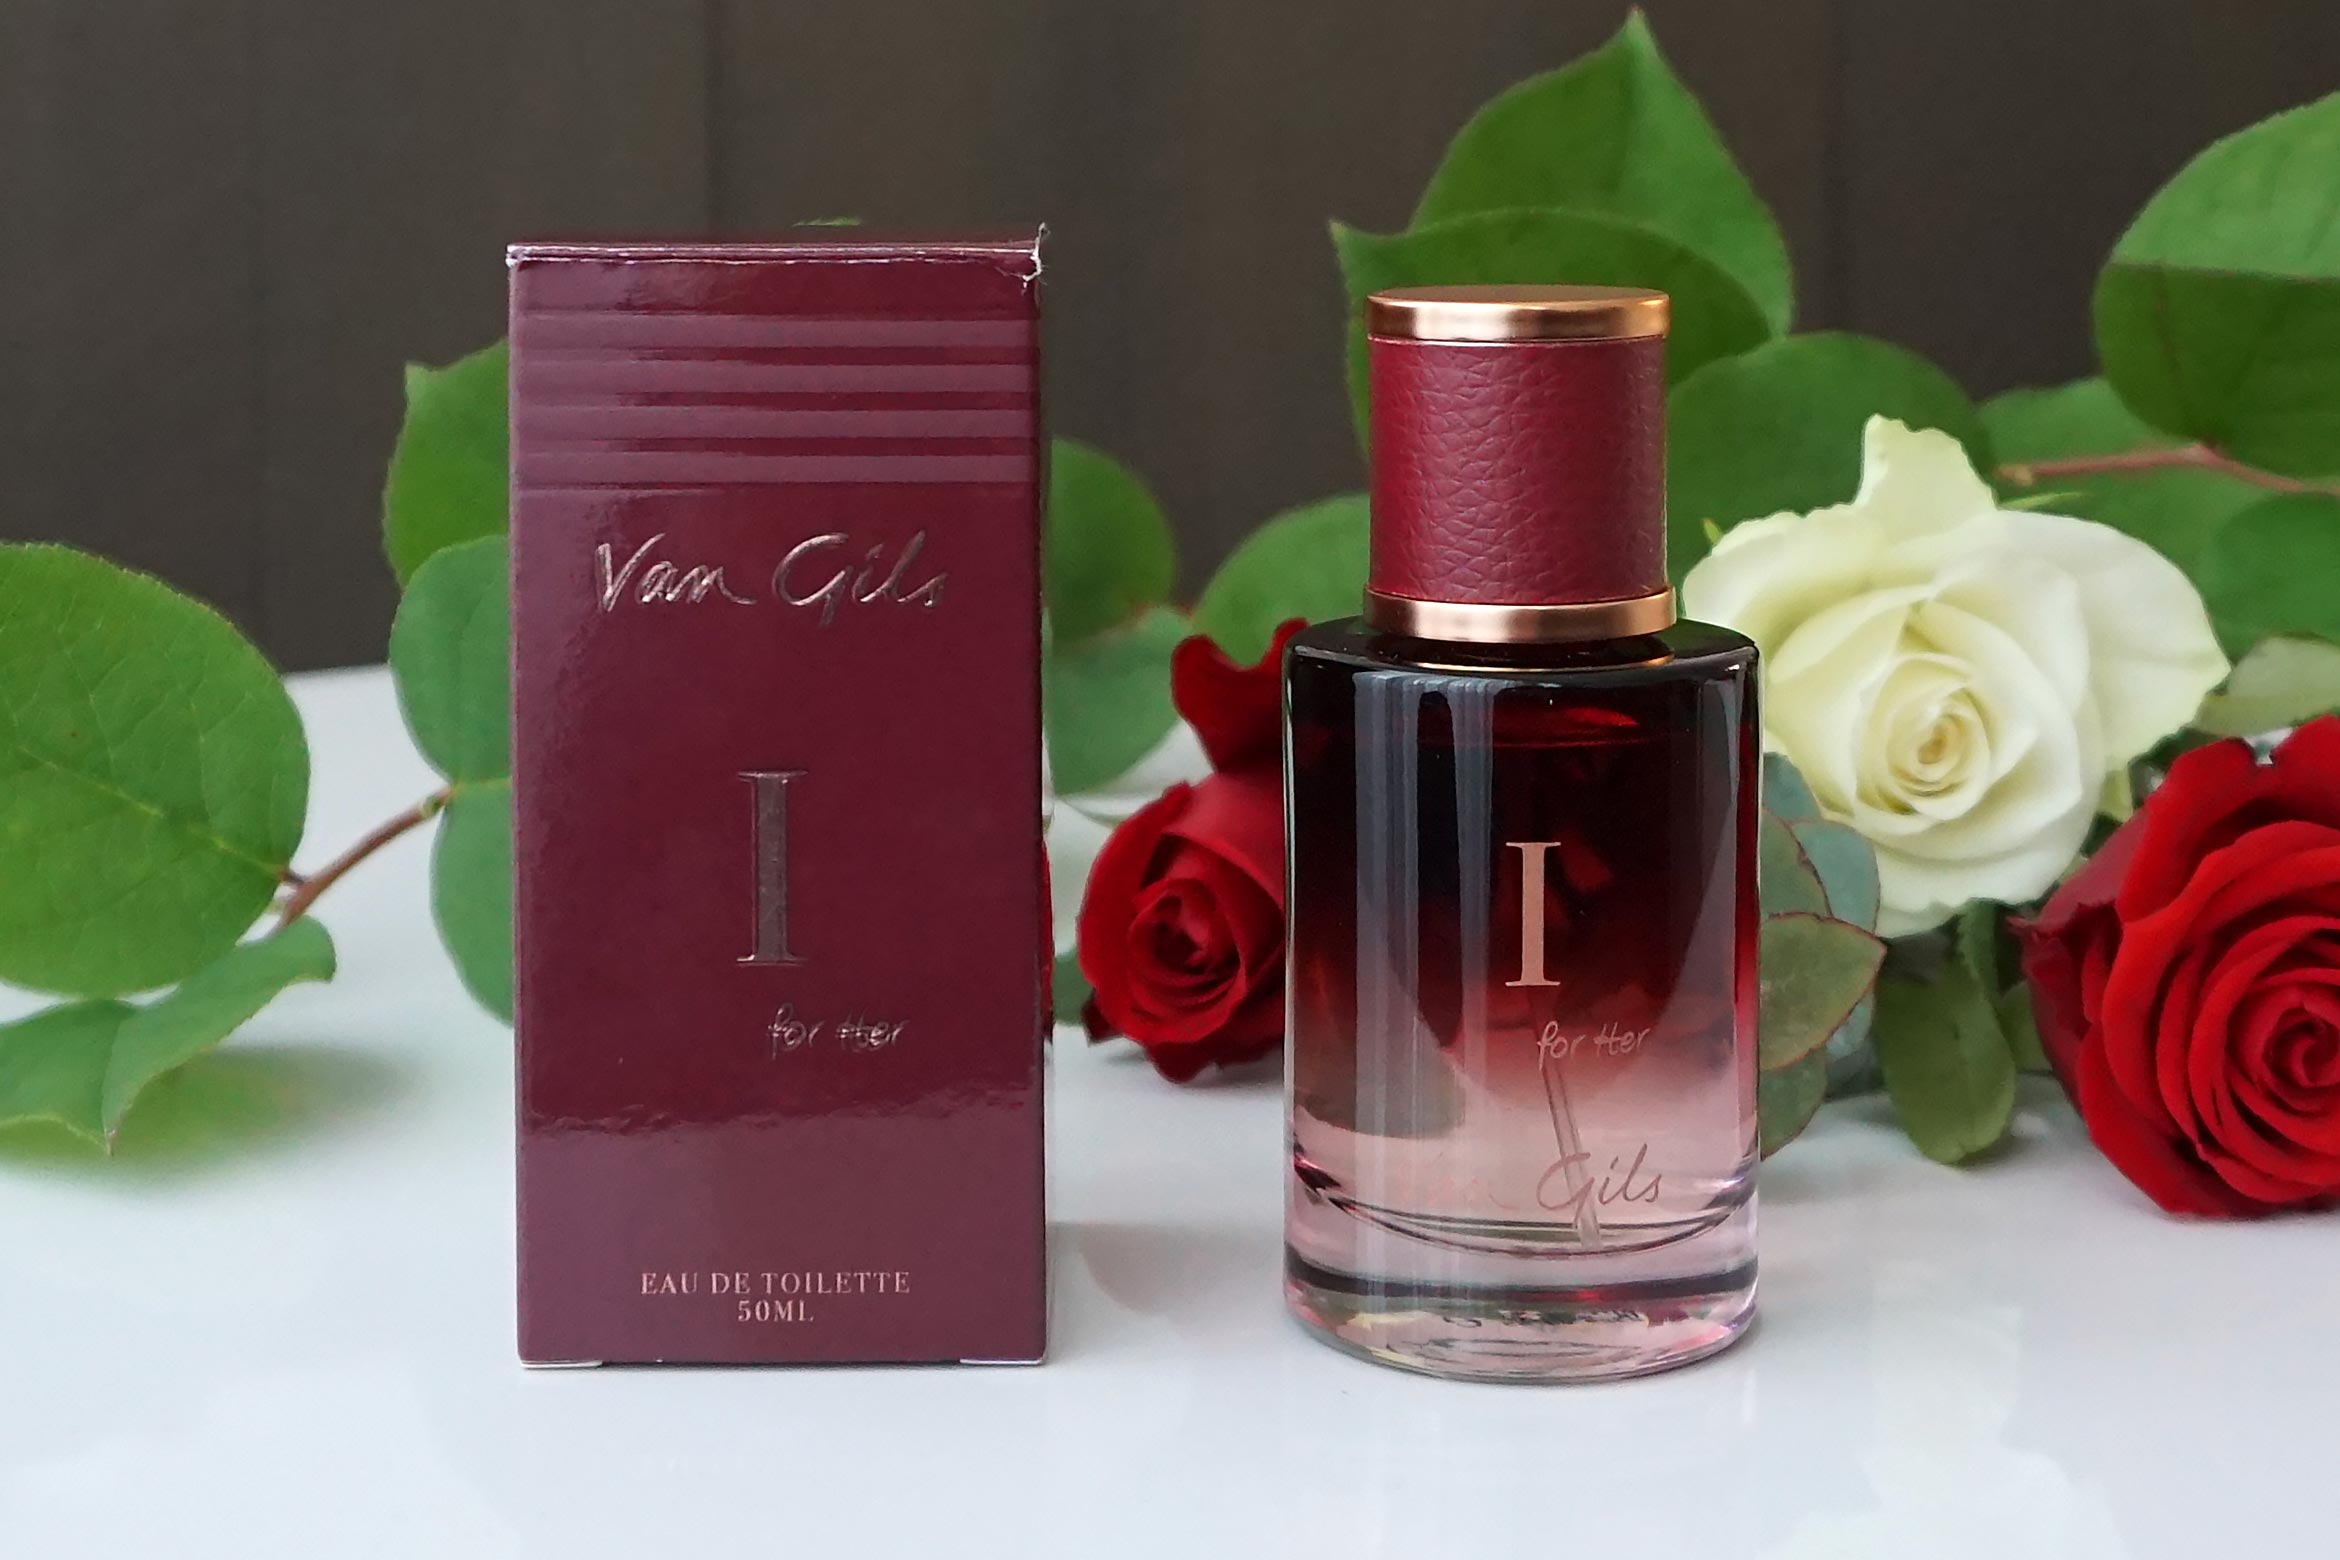 van-gils-i-for-her-review